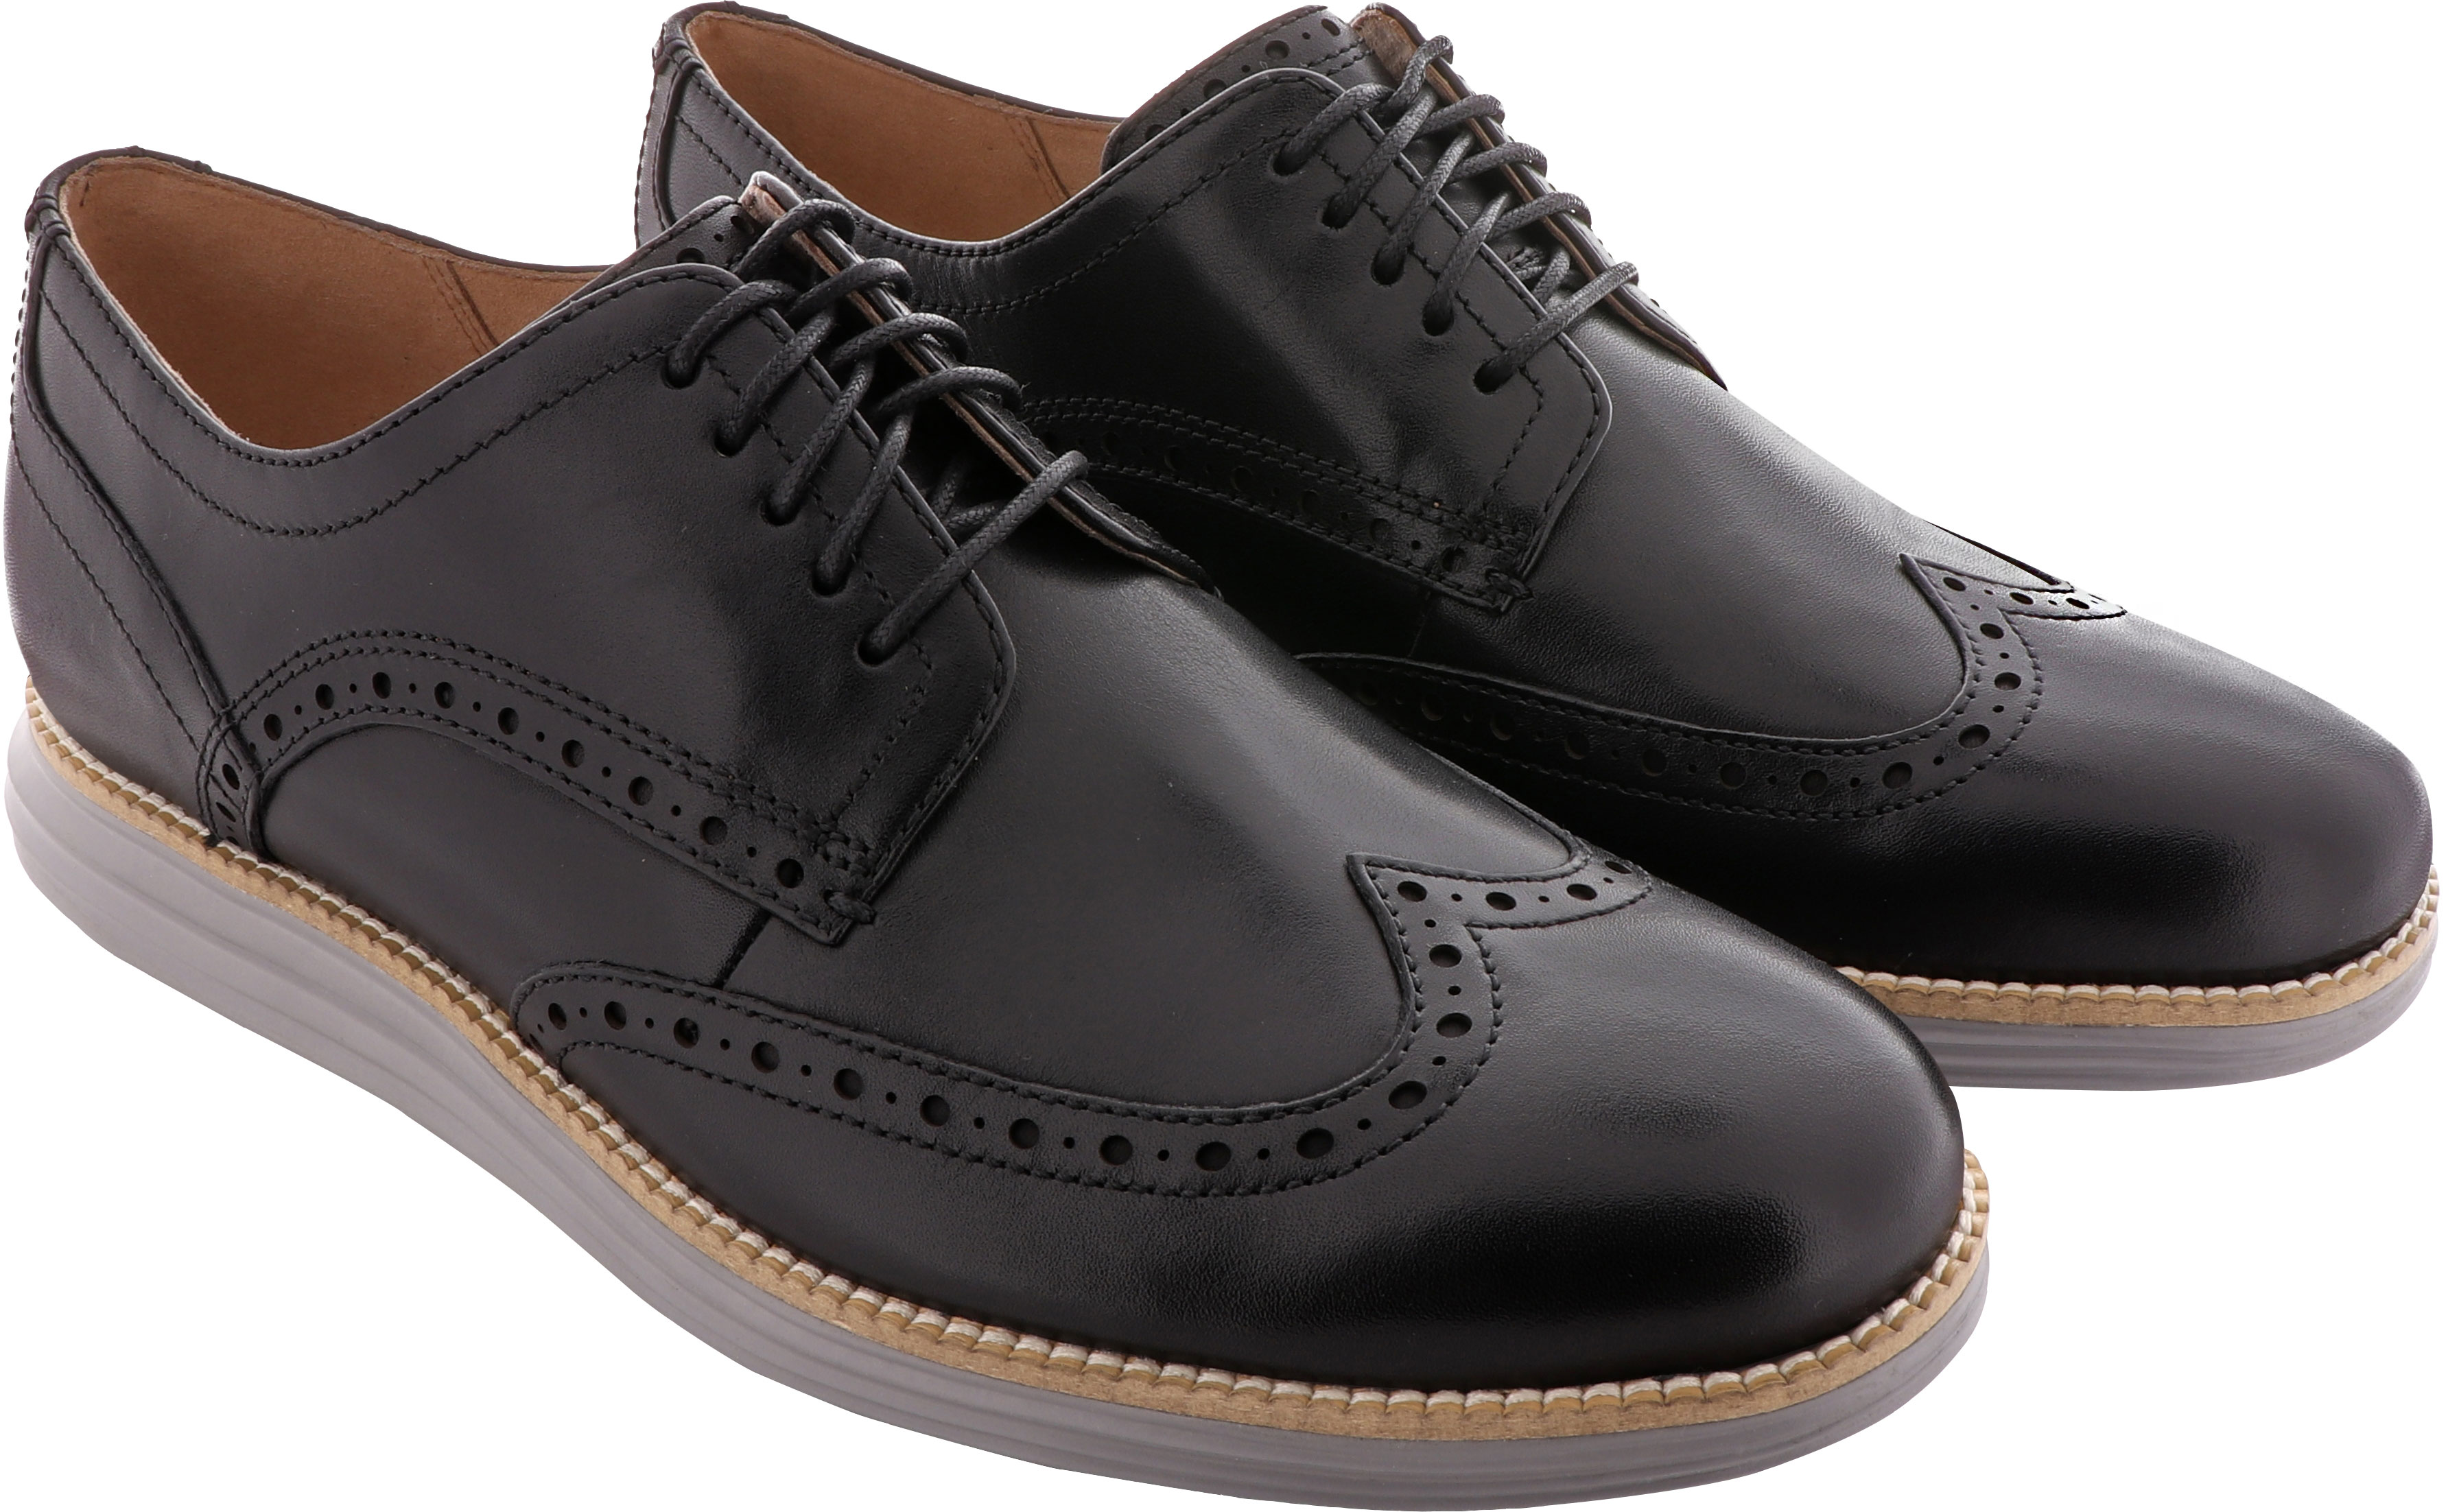 5d8afa2afd8f6 ... Cole Haan Men s W. Original Grand Shortwing C26470 Black  Leather-Ironstone · https   www.theshoemart.com product images images COL